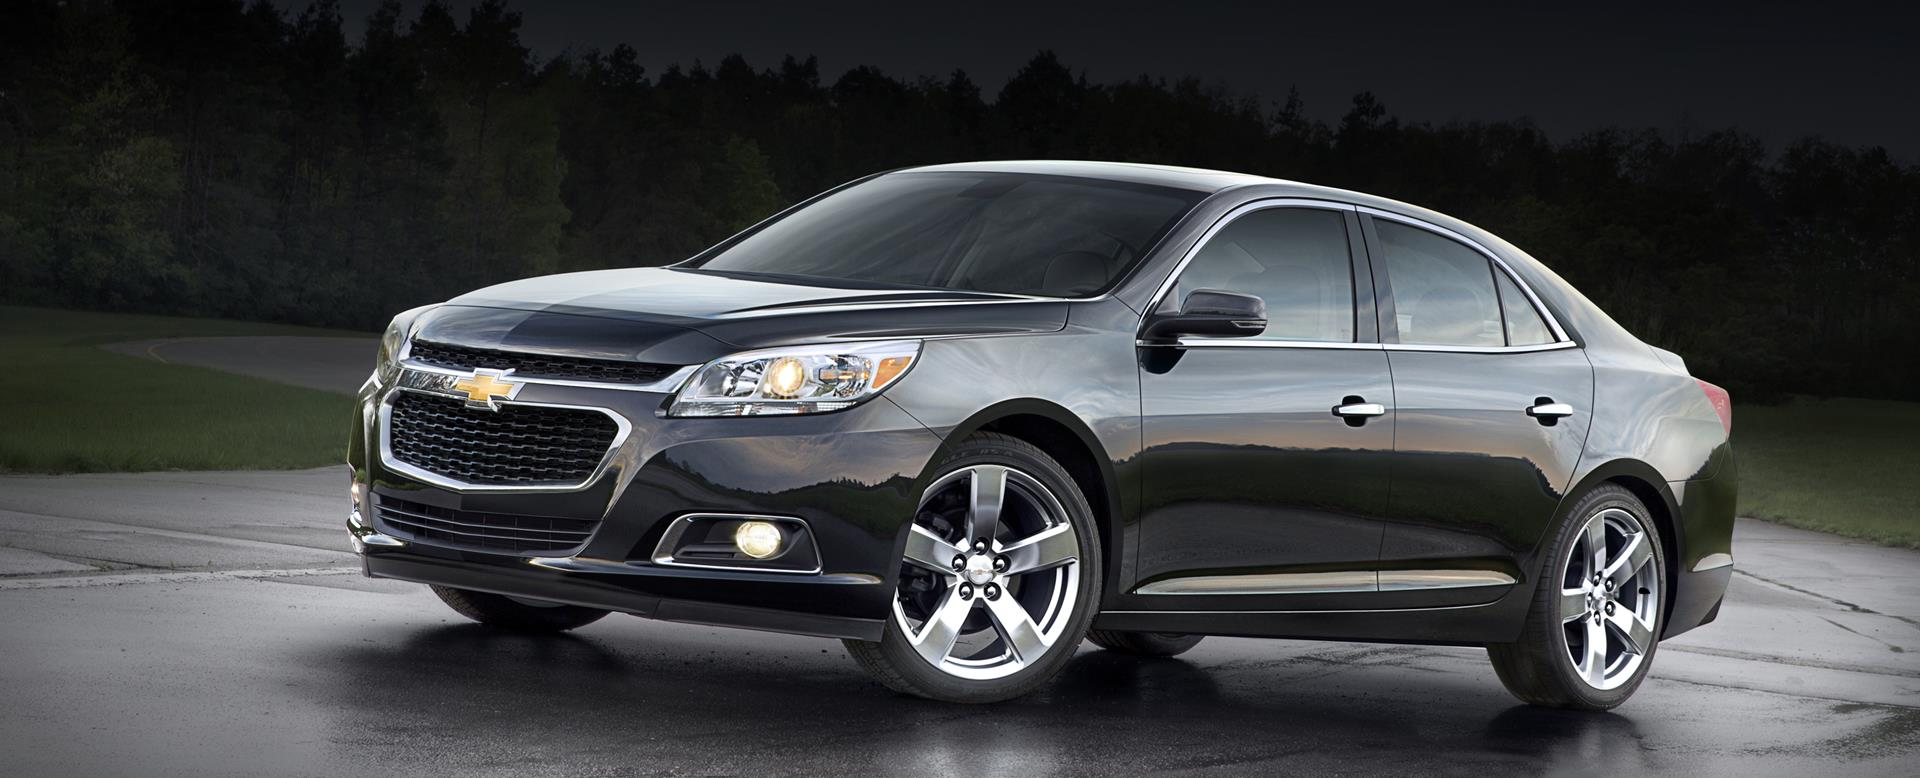 2015 Chevrolet Malibu News And Information Conceptcarz Com